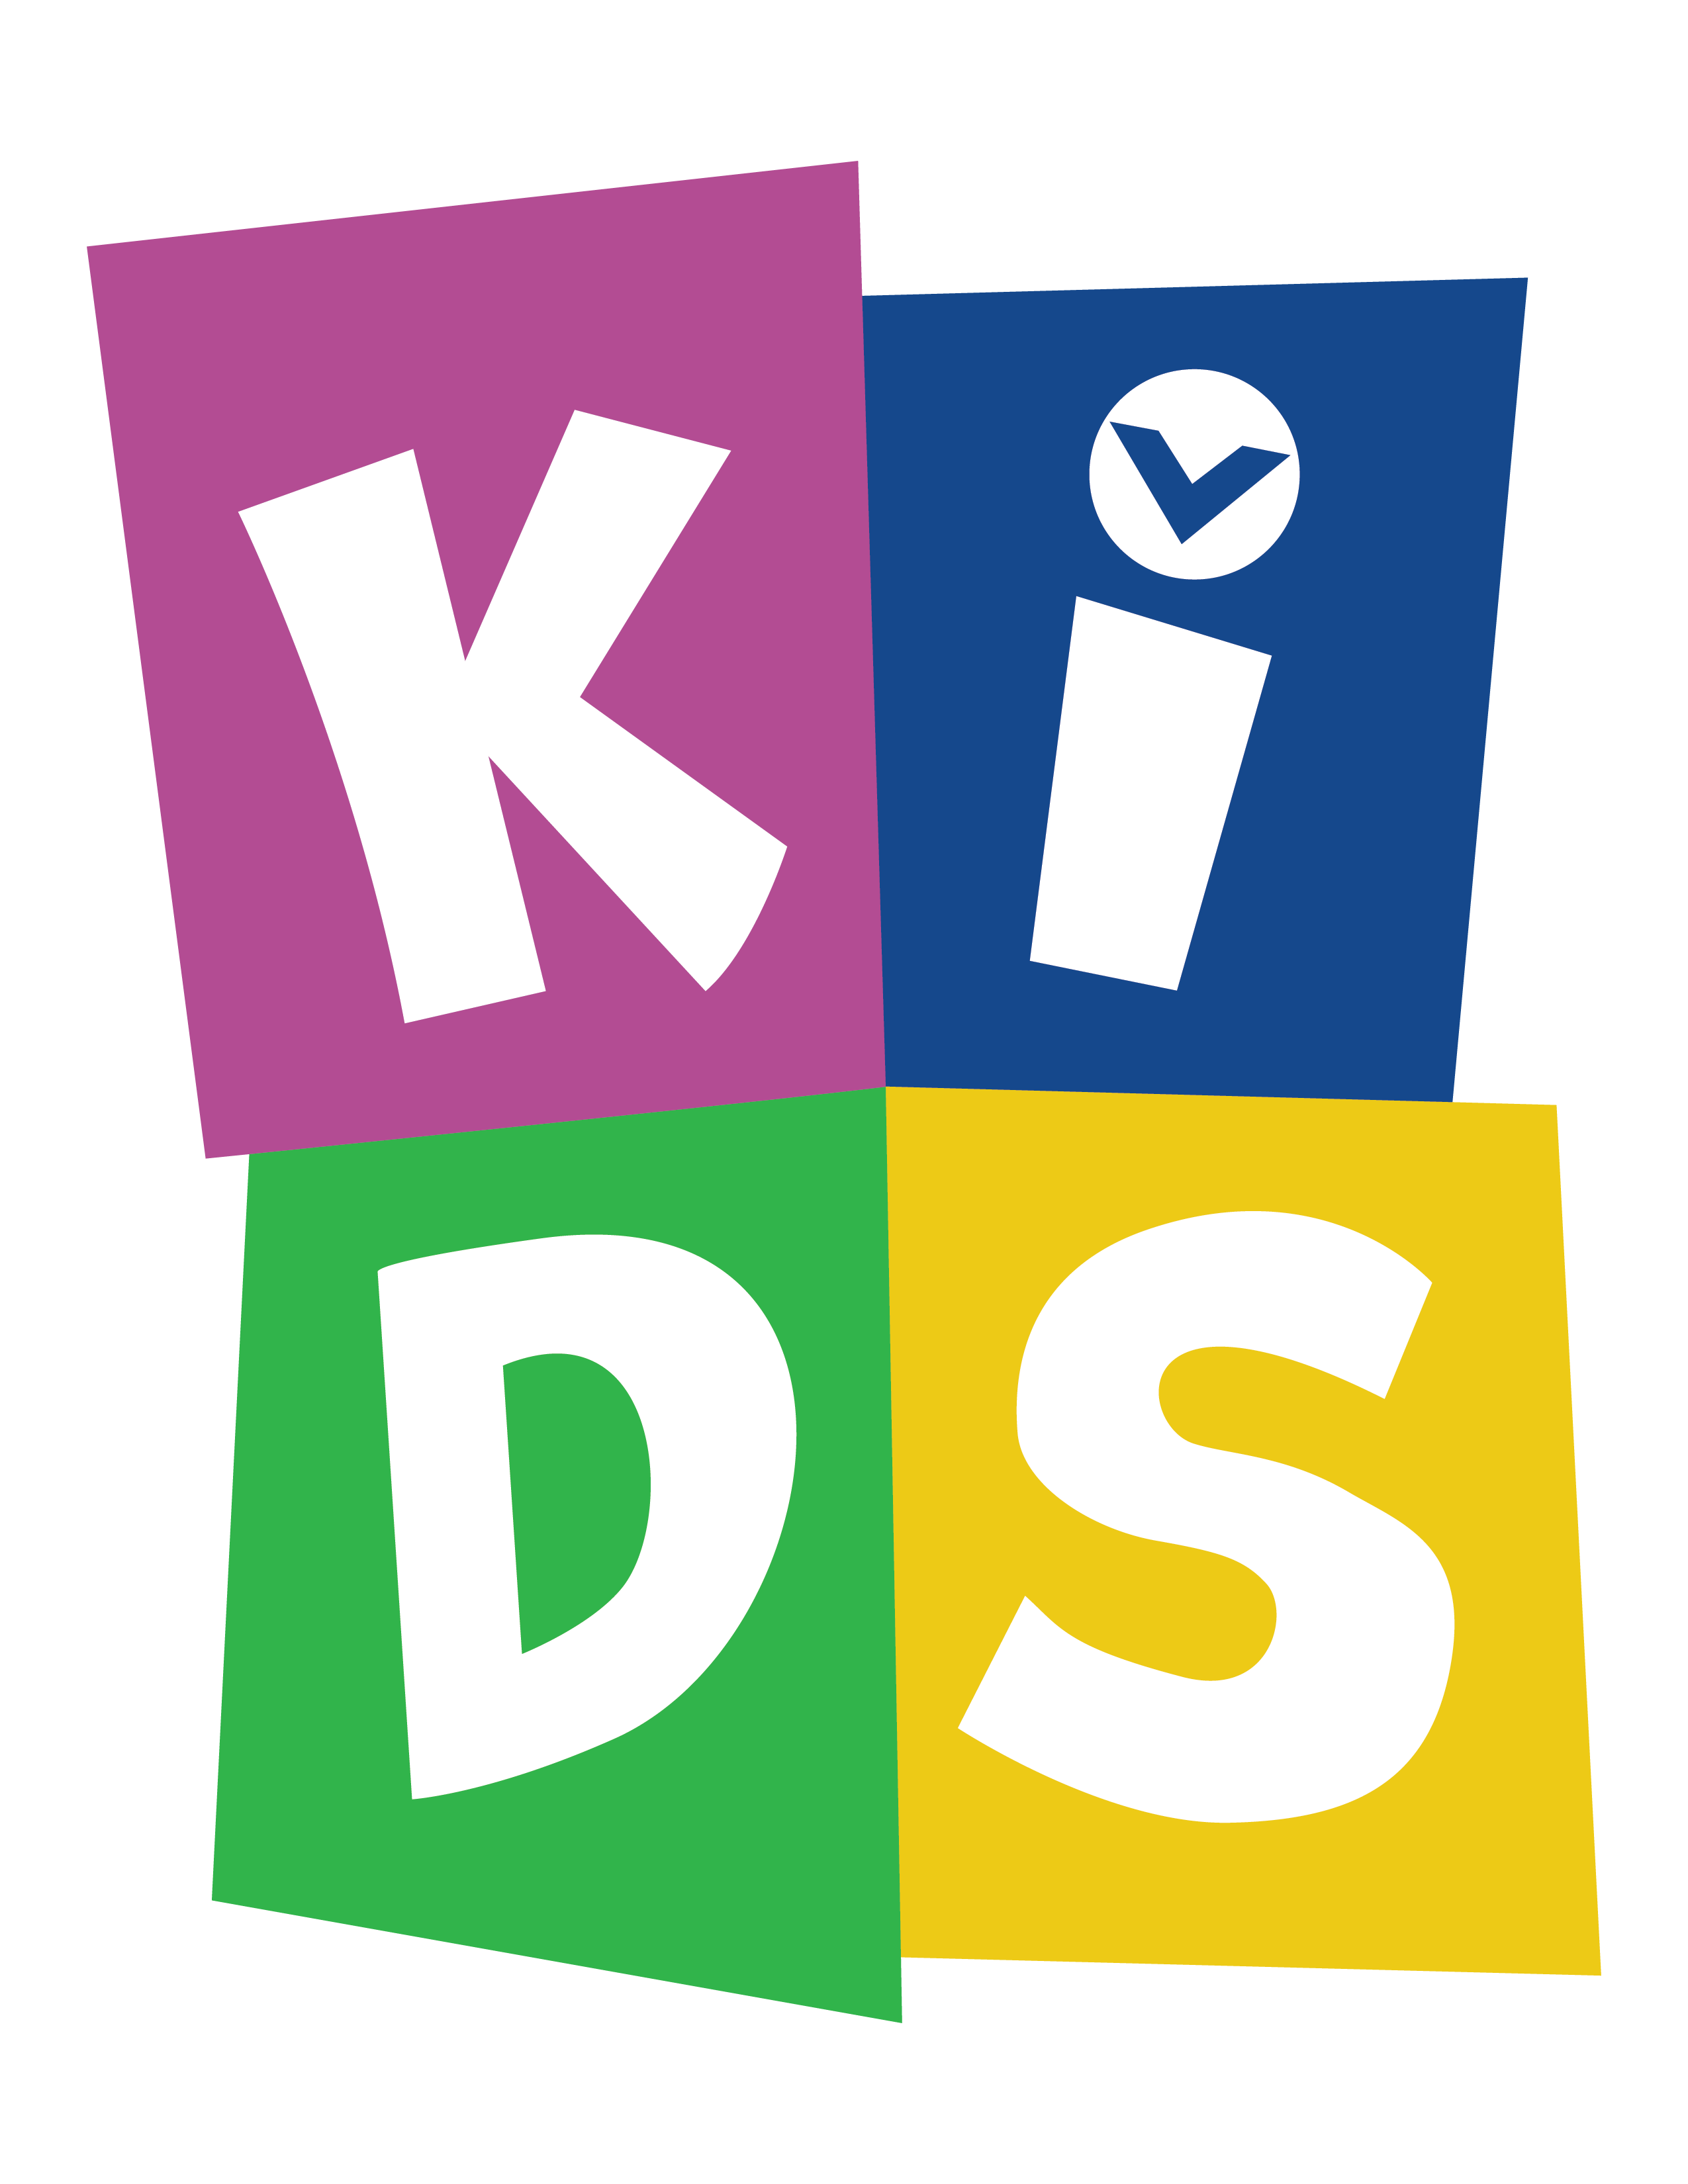 the gallery for gt kids logo